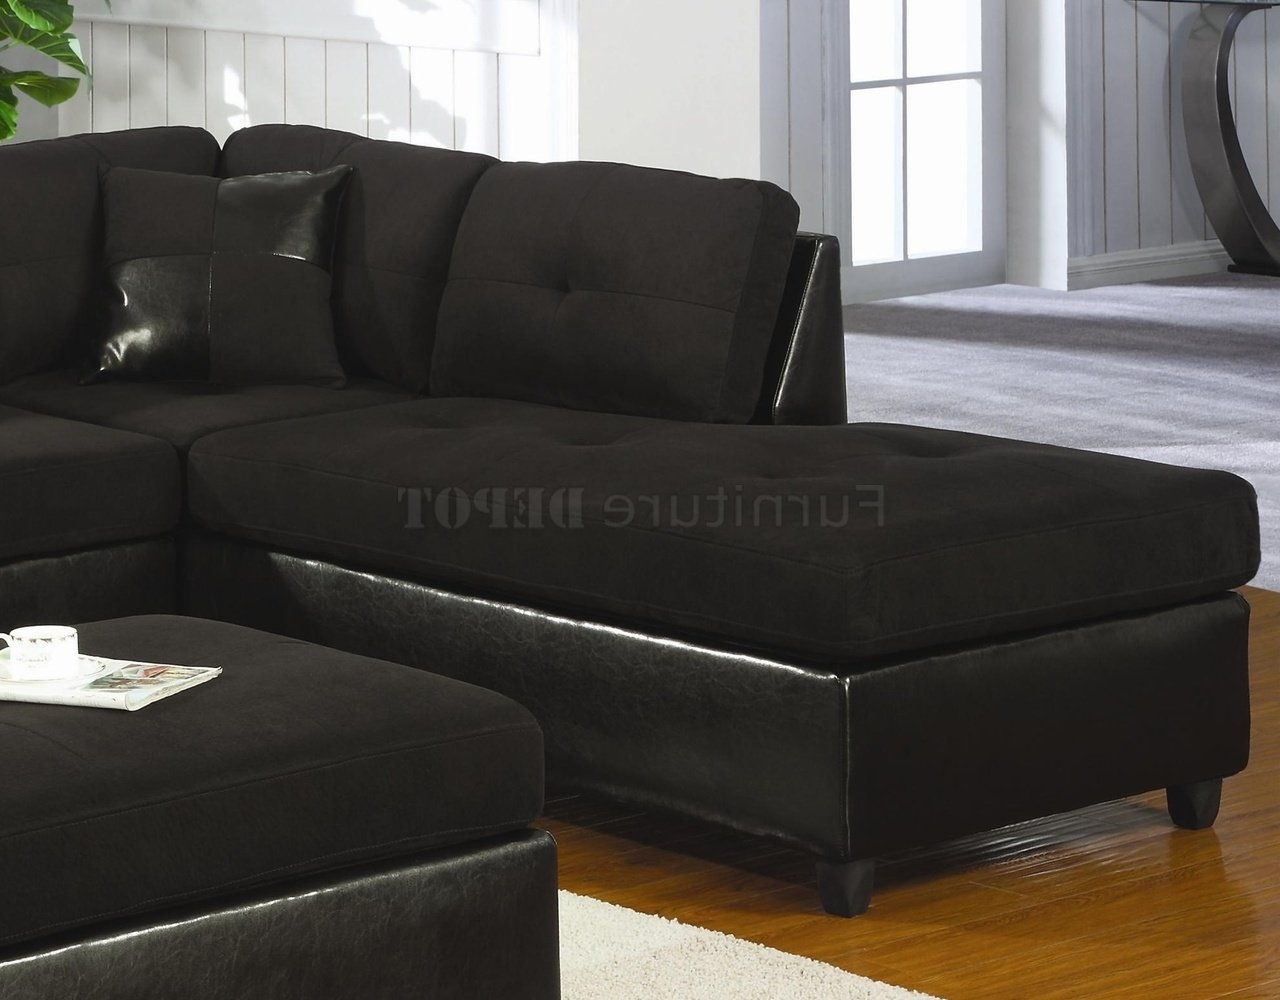 Microsuede Sectional Sofas Regarding Latest Black Microsuede Couch (View 9 of 20)